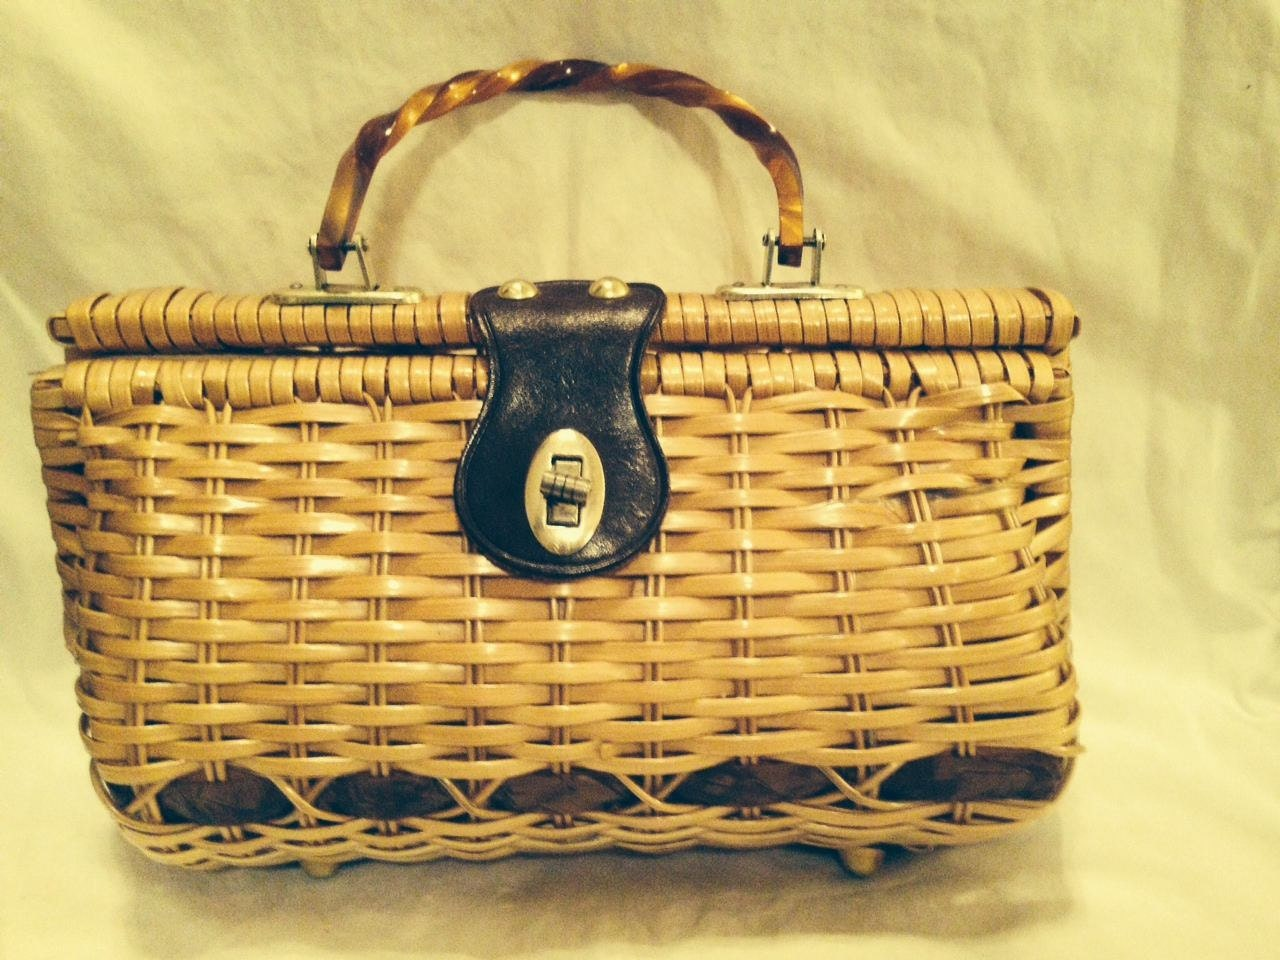 Woven Basket Purse : Basket woven purse with leather clasp